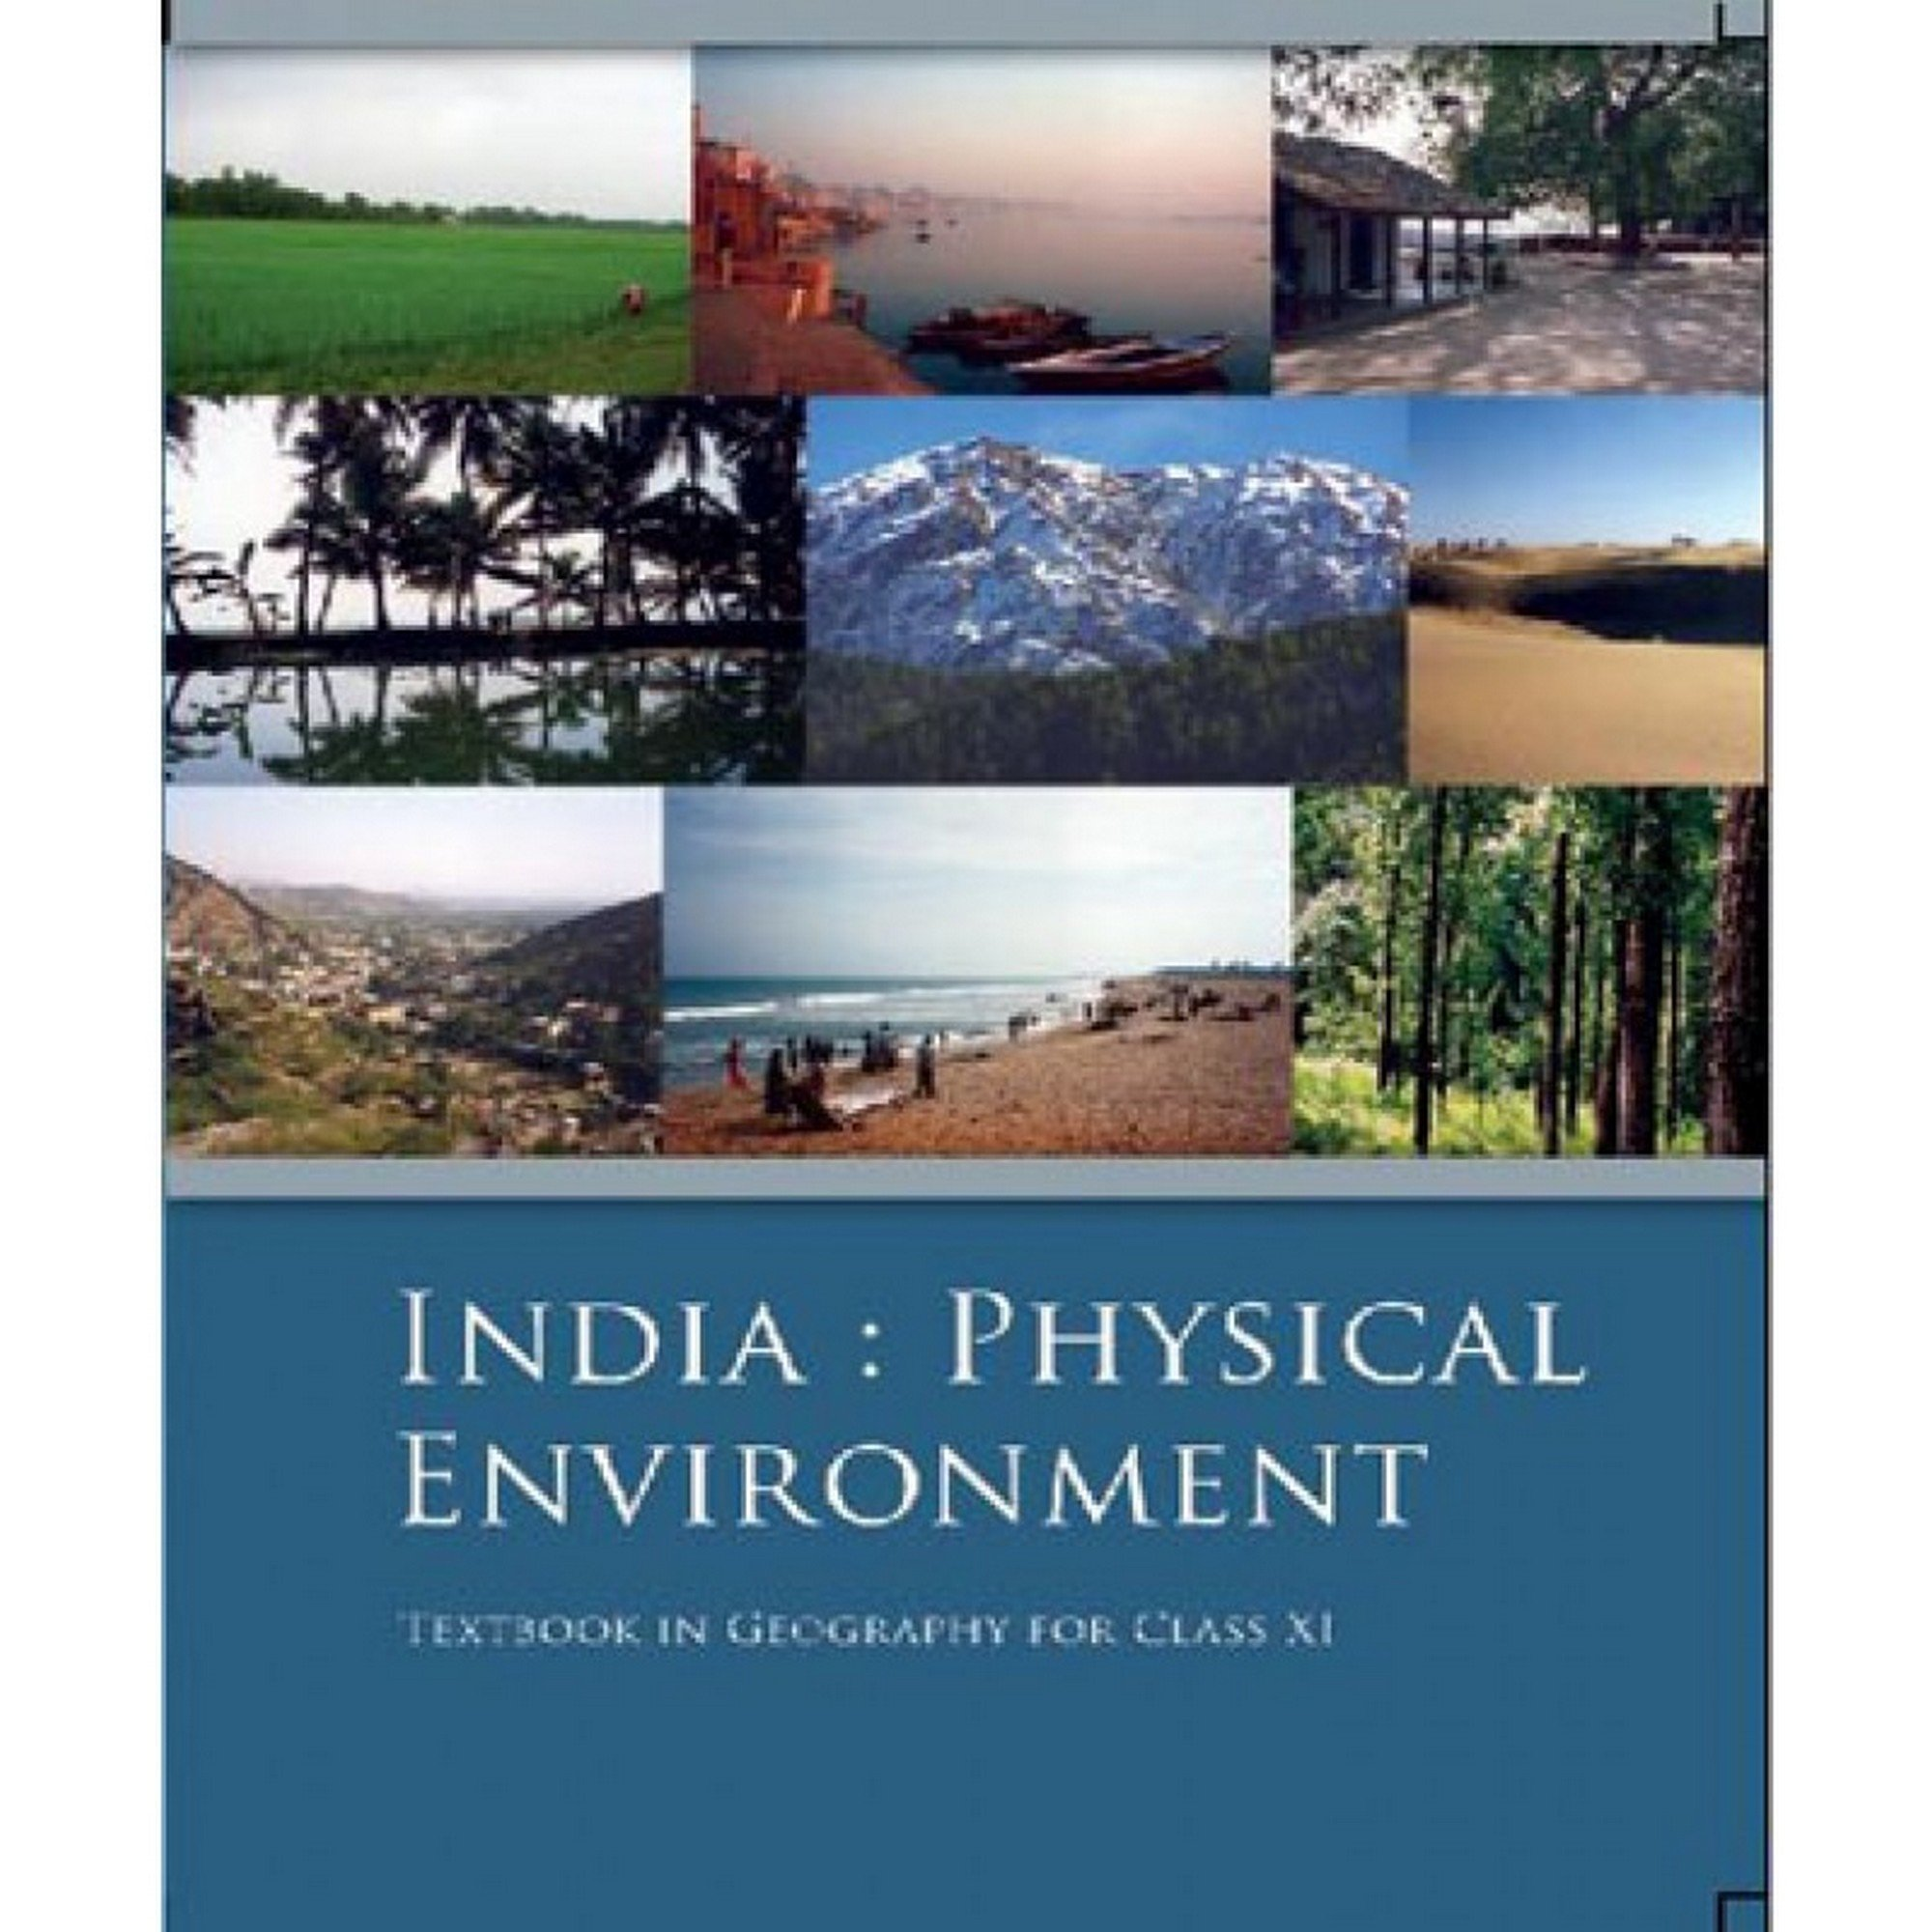 Icse textbooks buy textbooks for icse online at best prices in india physical environment textbook in geography for class 11 11094 fandeluxe Choice Image